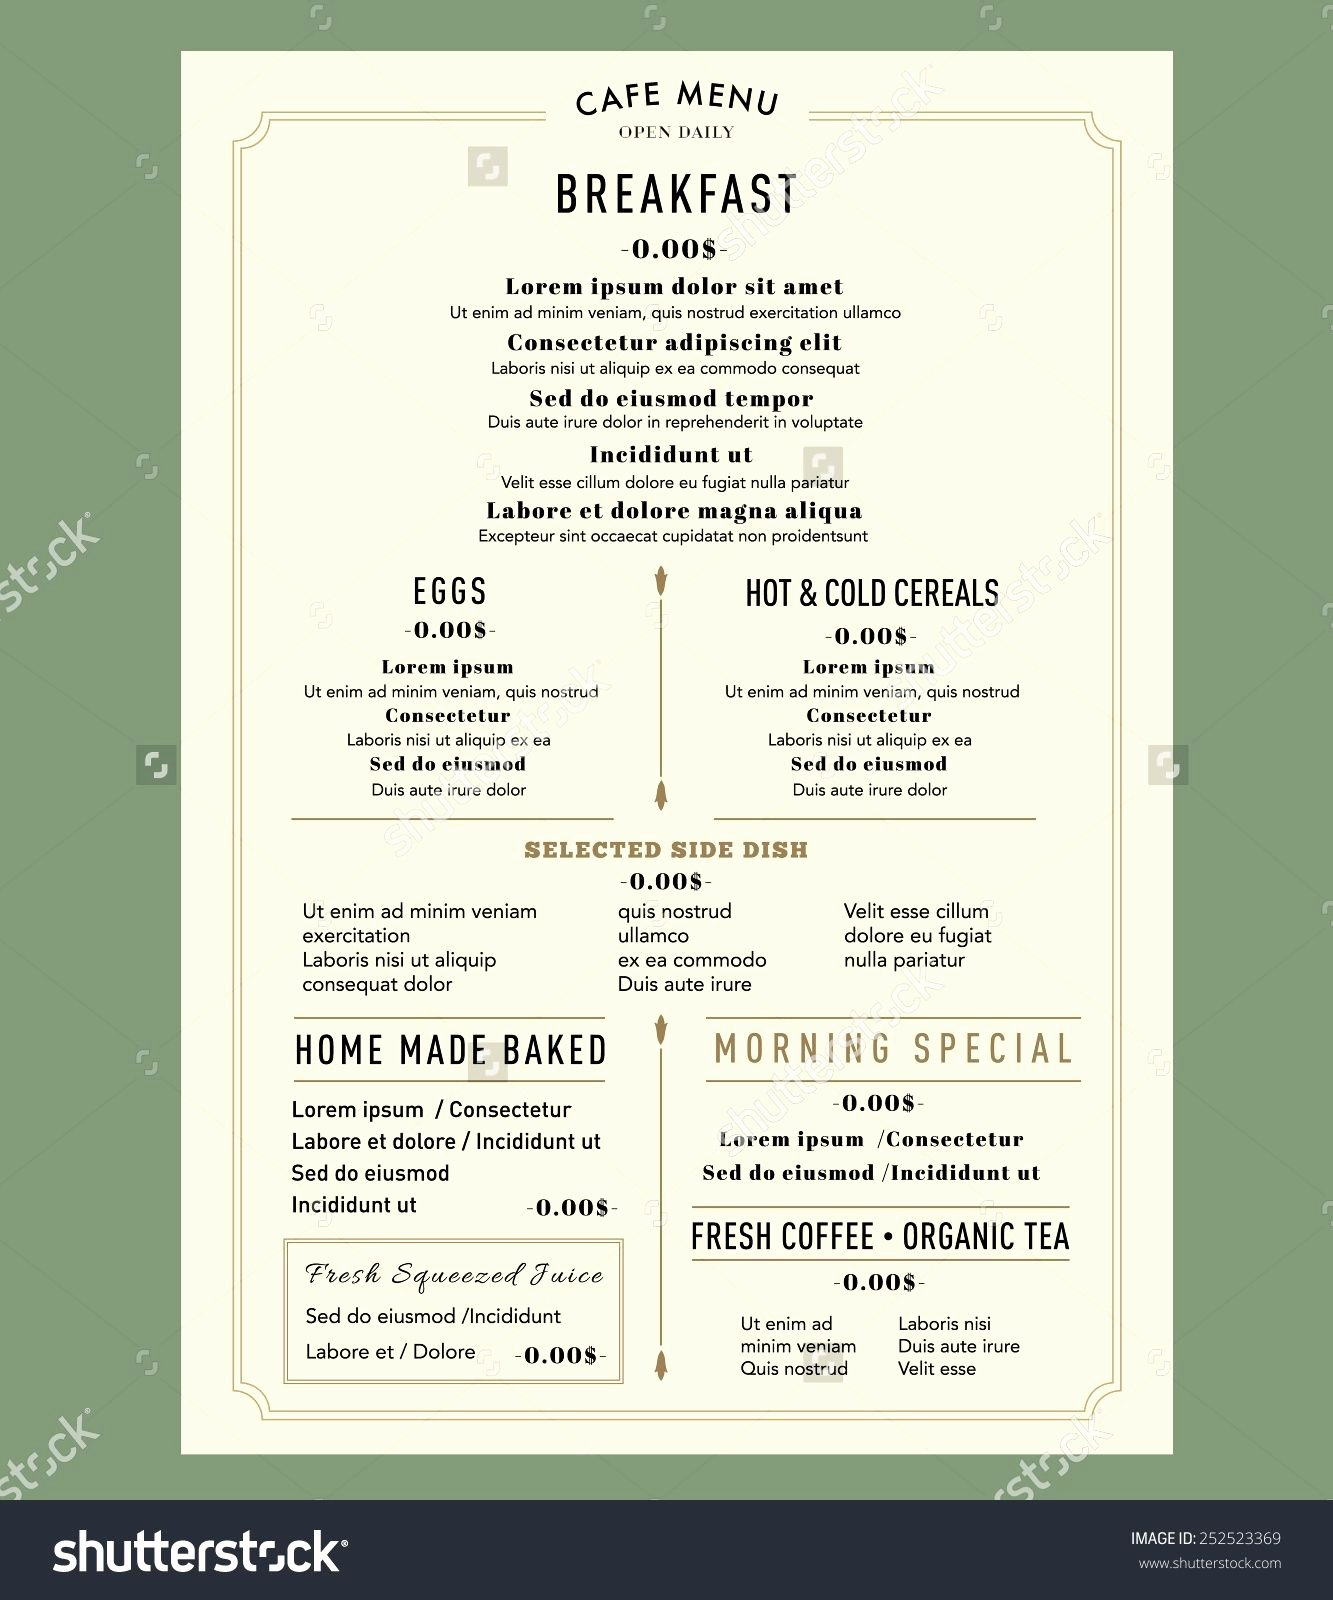 Brunch Menu Templates Fresh Menu Design for Breakfast Restaurant Cafe Graphic Design